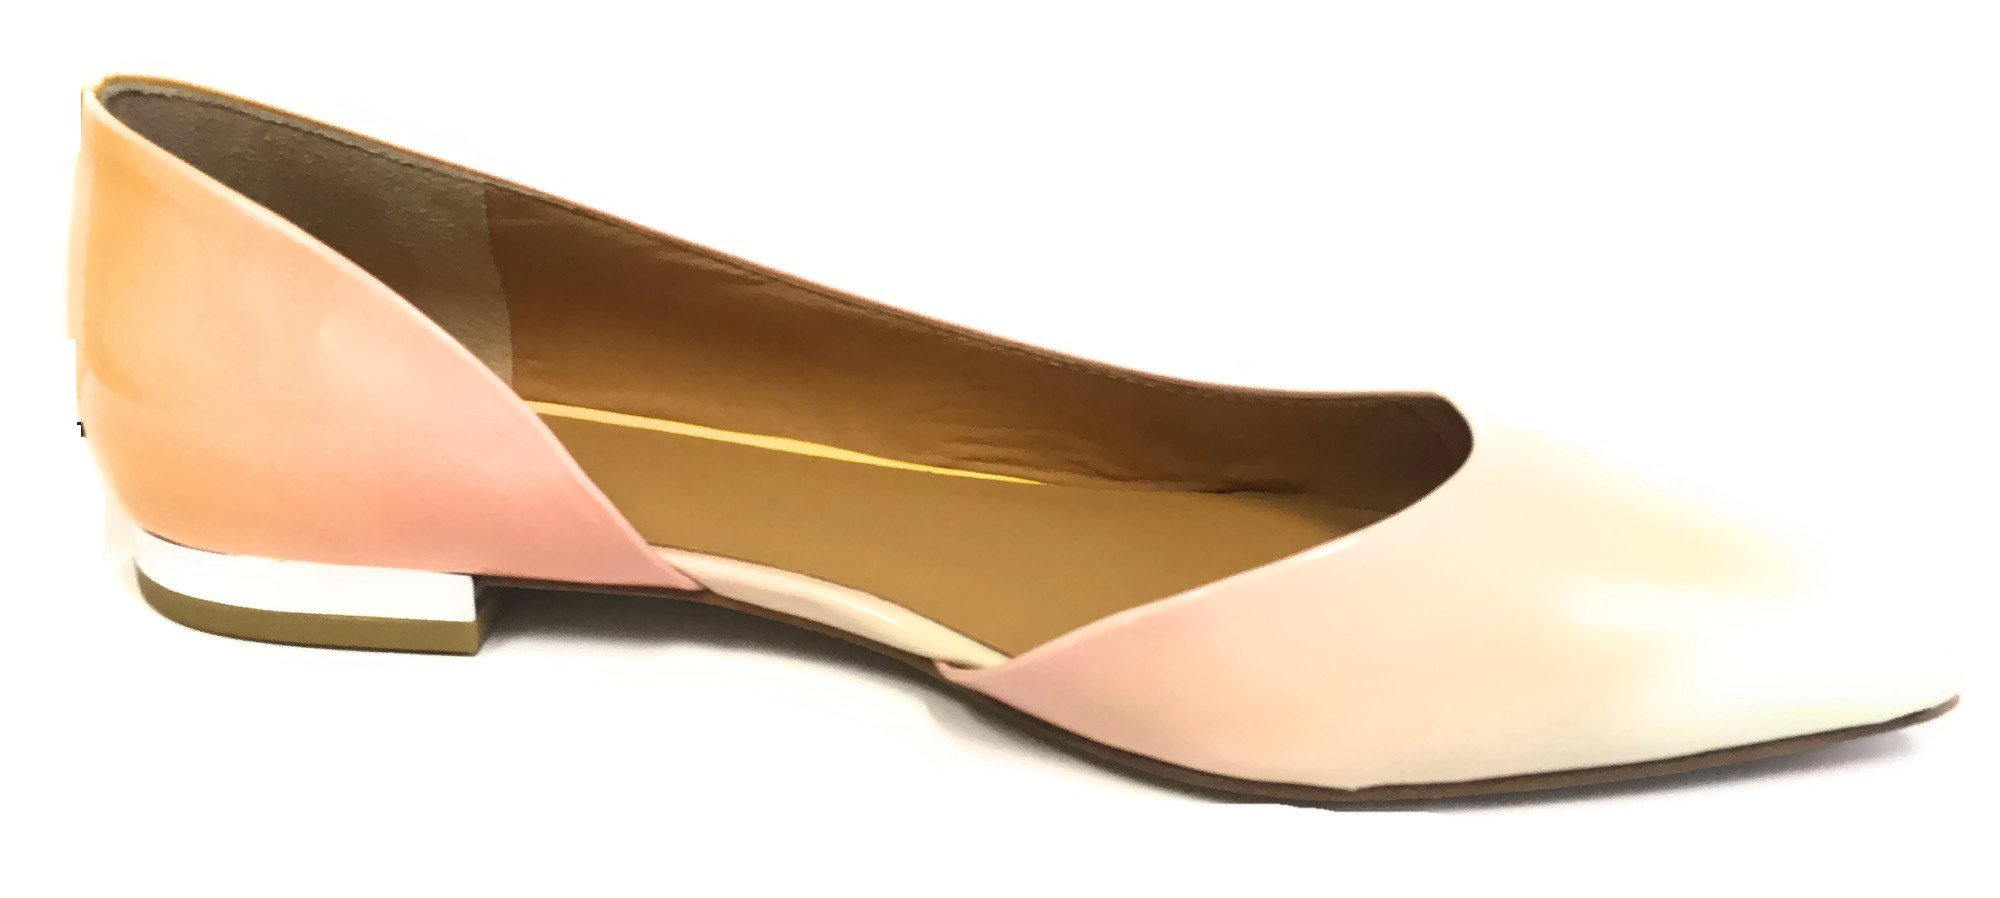 Marc by Marc Jacobs M900181 Patent Leather Ballerina Flats (36 EU 6 US)